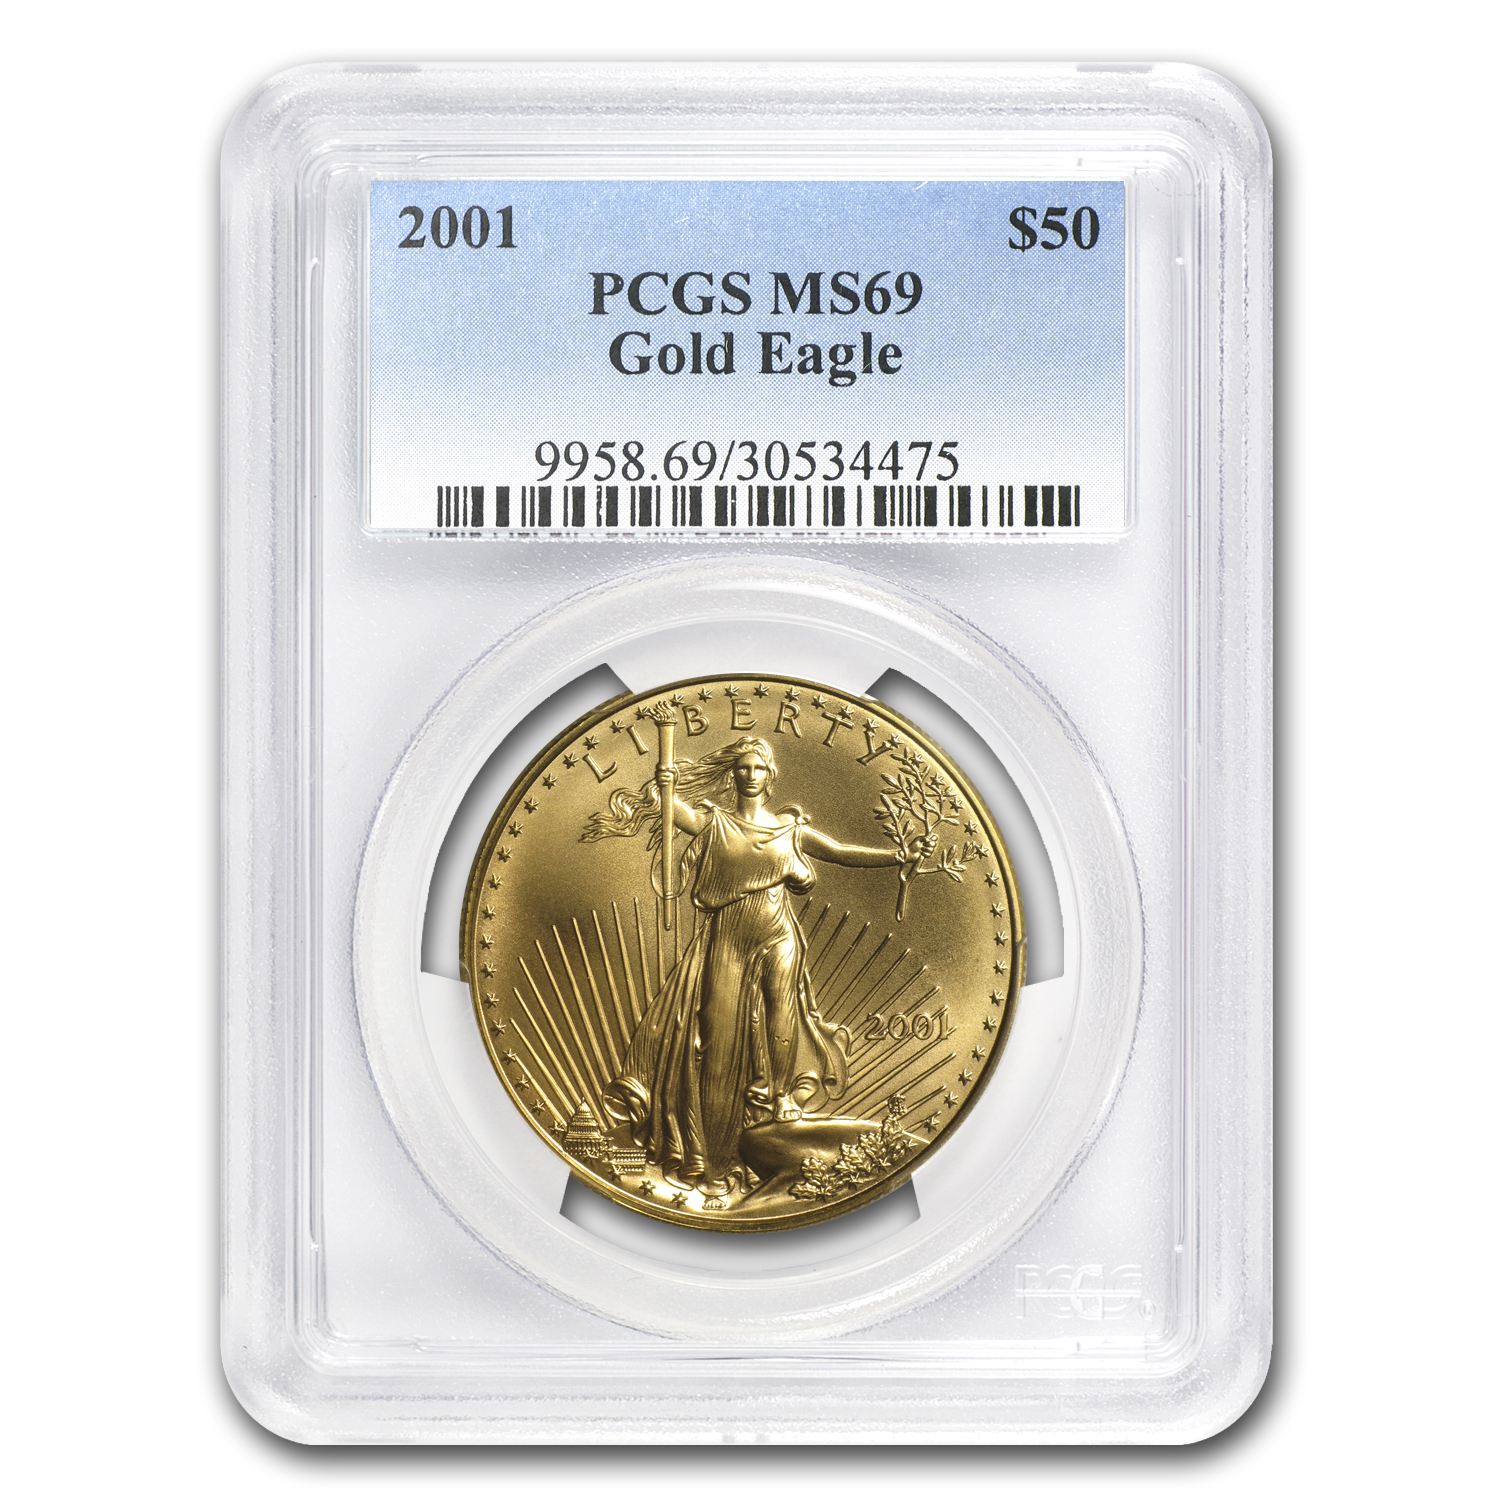 2001 1 oz Gold American Eagle MS-69 PCGS